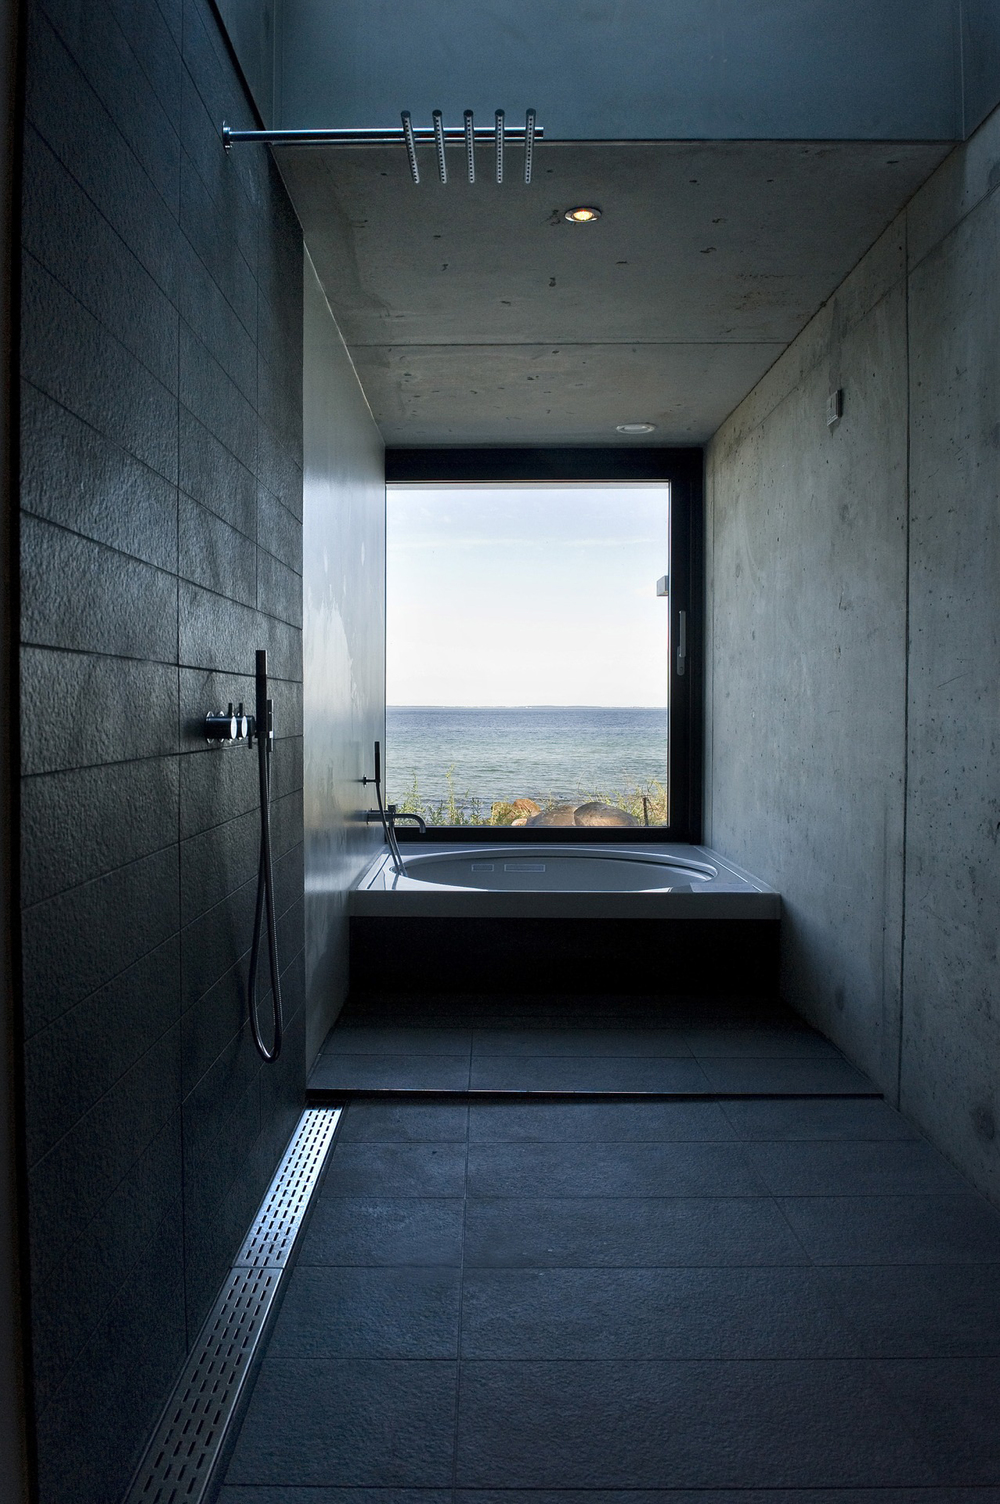 Concrete Bathroom with a Glass window and view ITCHBAN.com